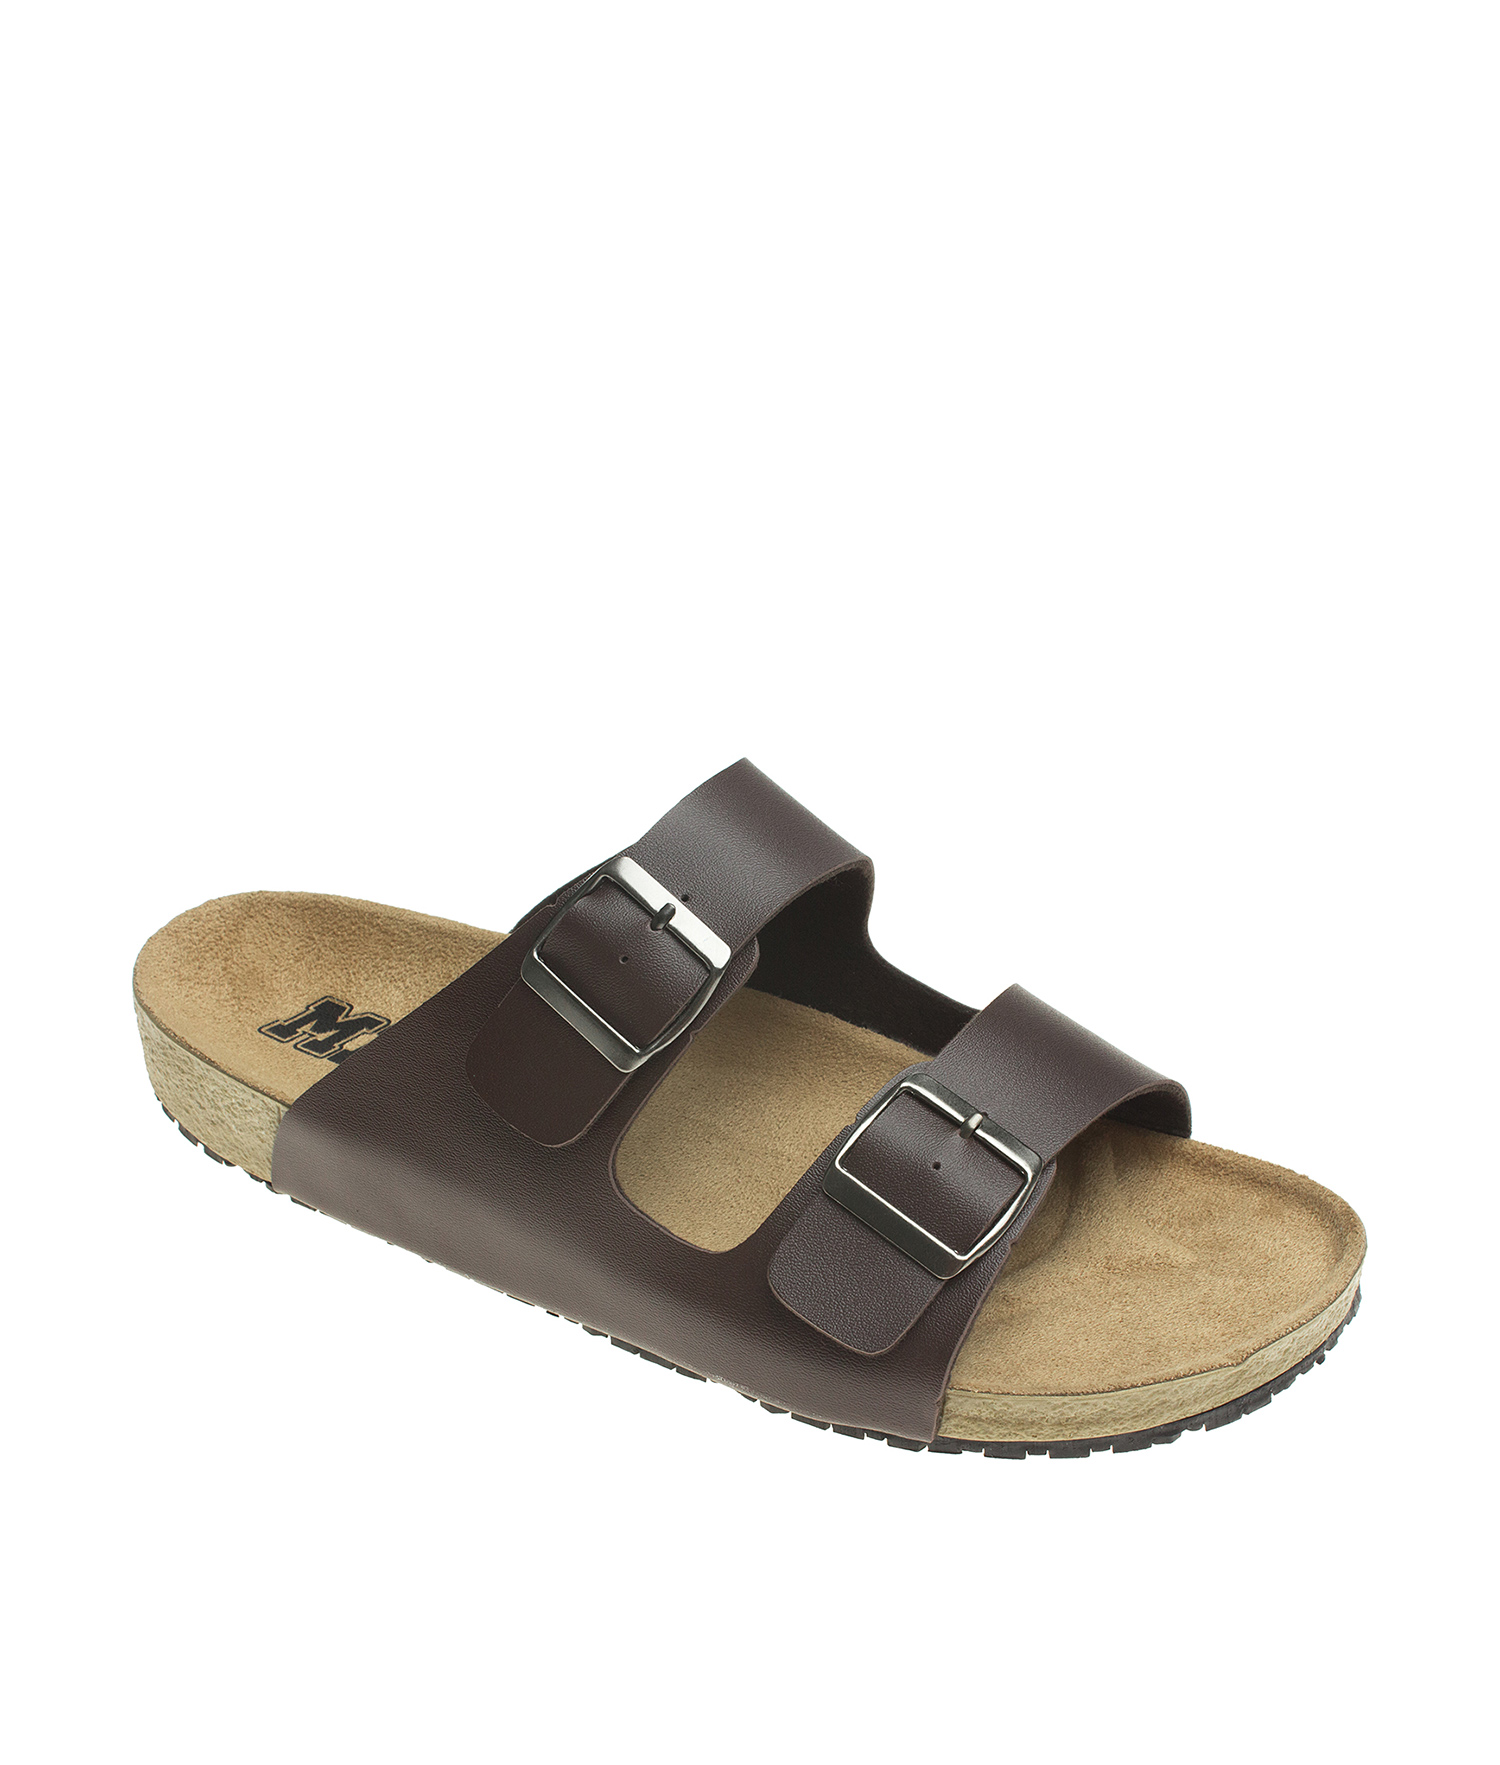 8a6c719c6a101 AnnaKastle Womens Double Strap Silde Flat Sandals Brown